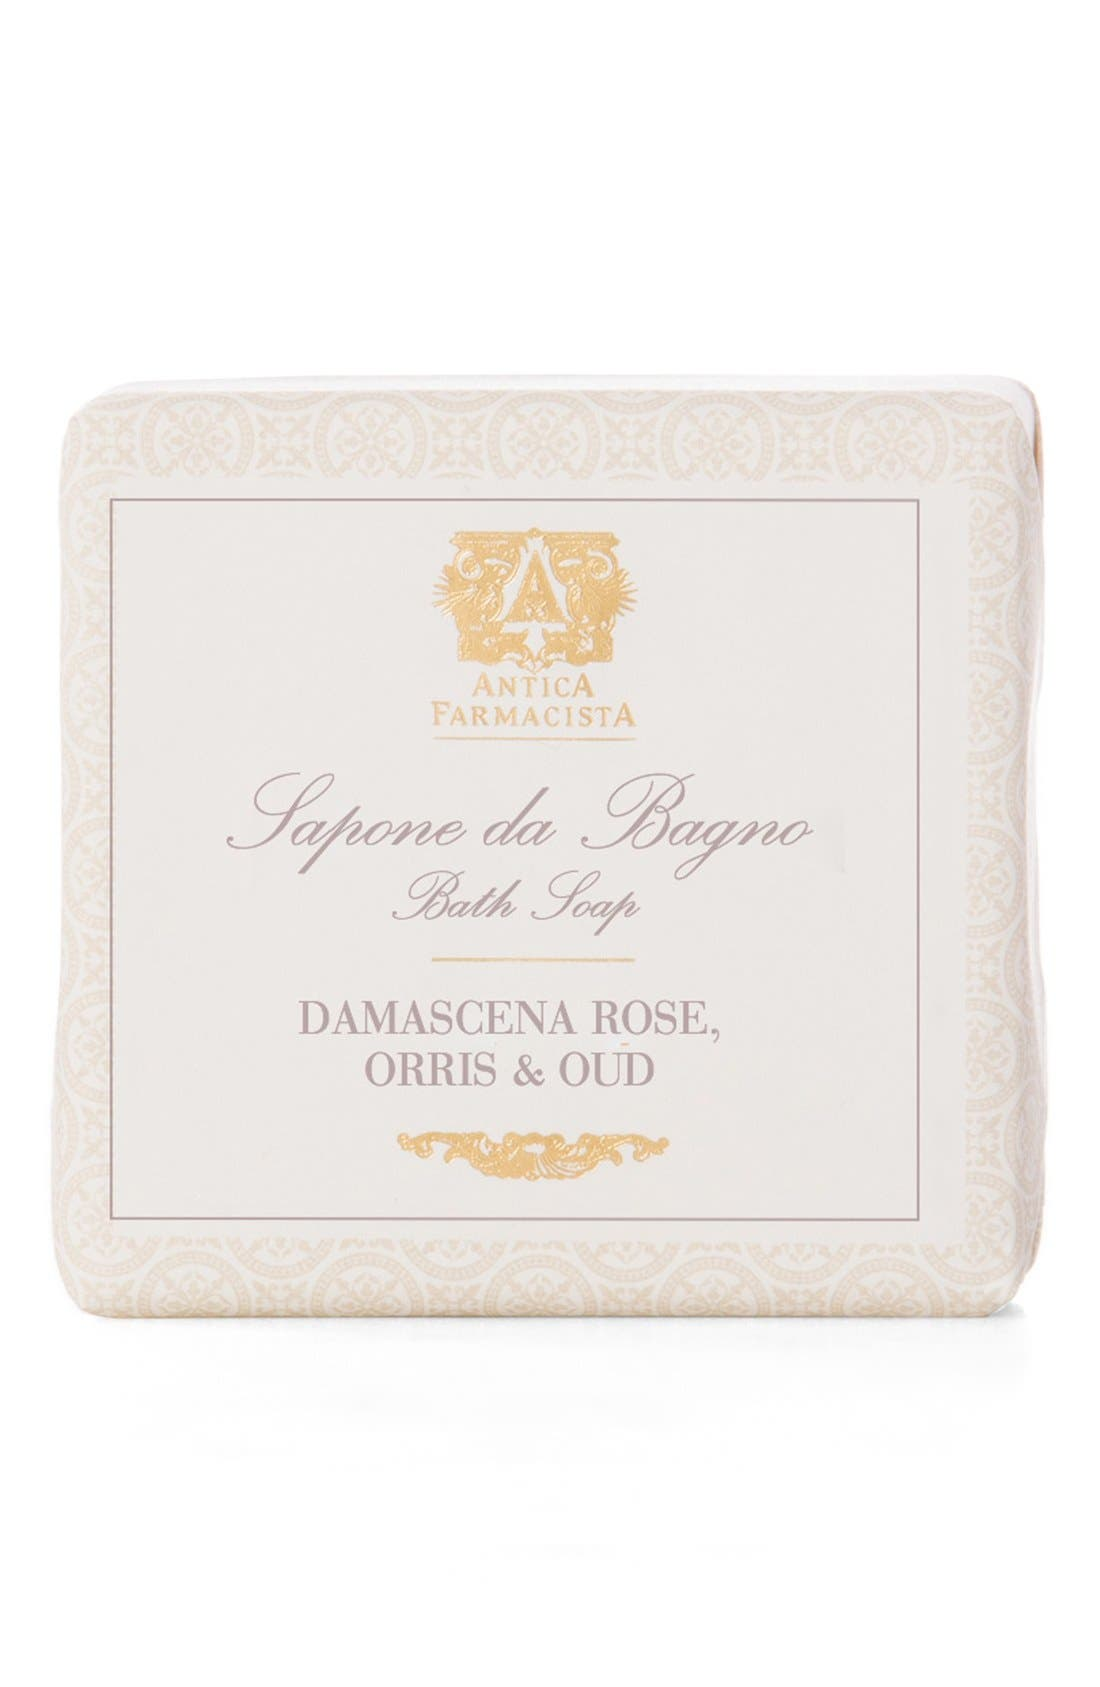 'Damascena Rose, Orris & Oud' Bar Soap,                         Main,                         color,